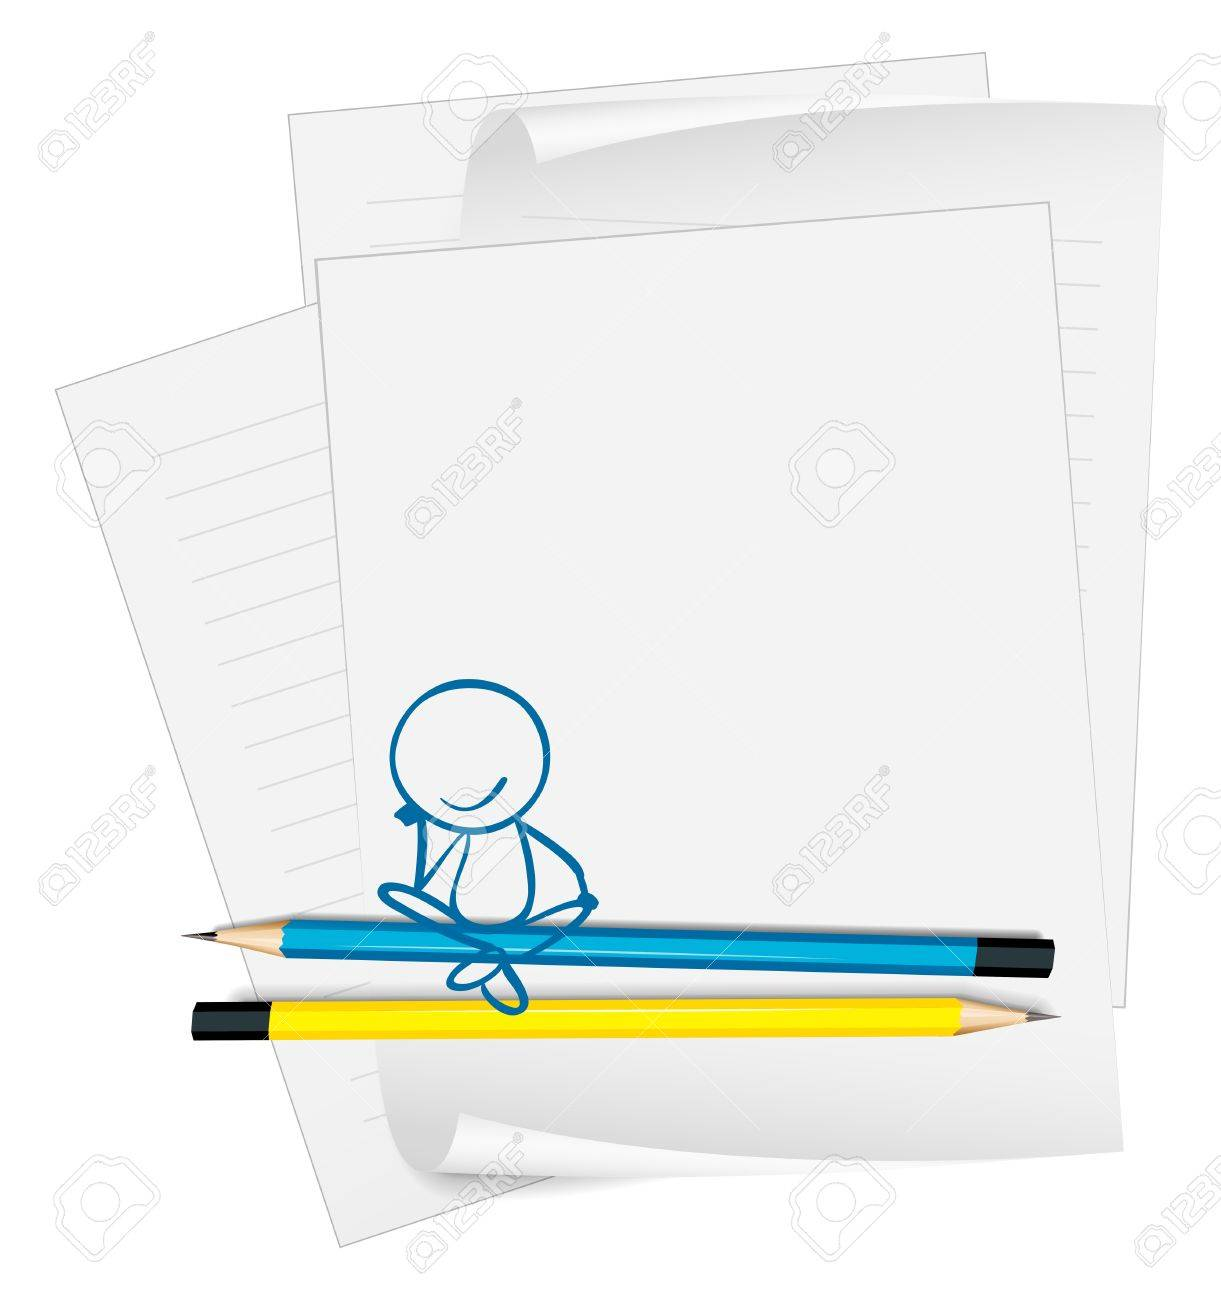 Illustration of a paper with a drawing of a boy sitting on a white background Stock Vector - 18824905